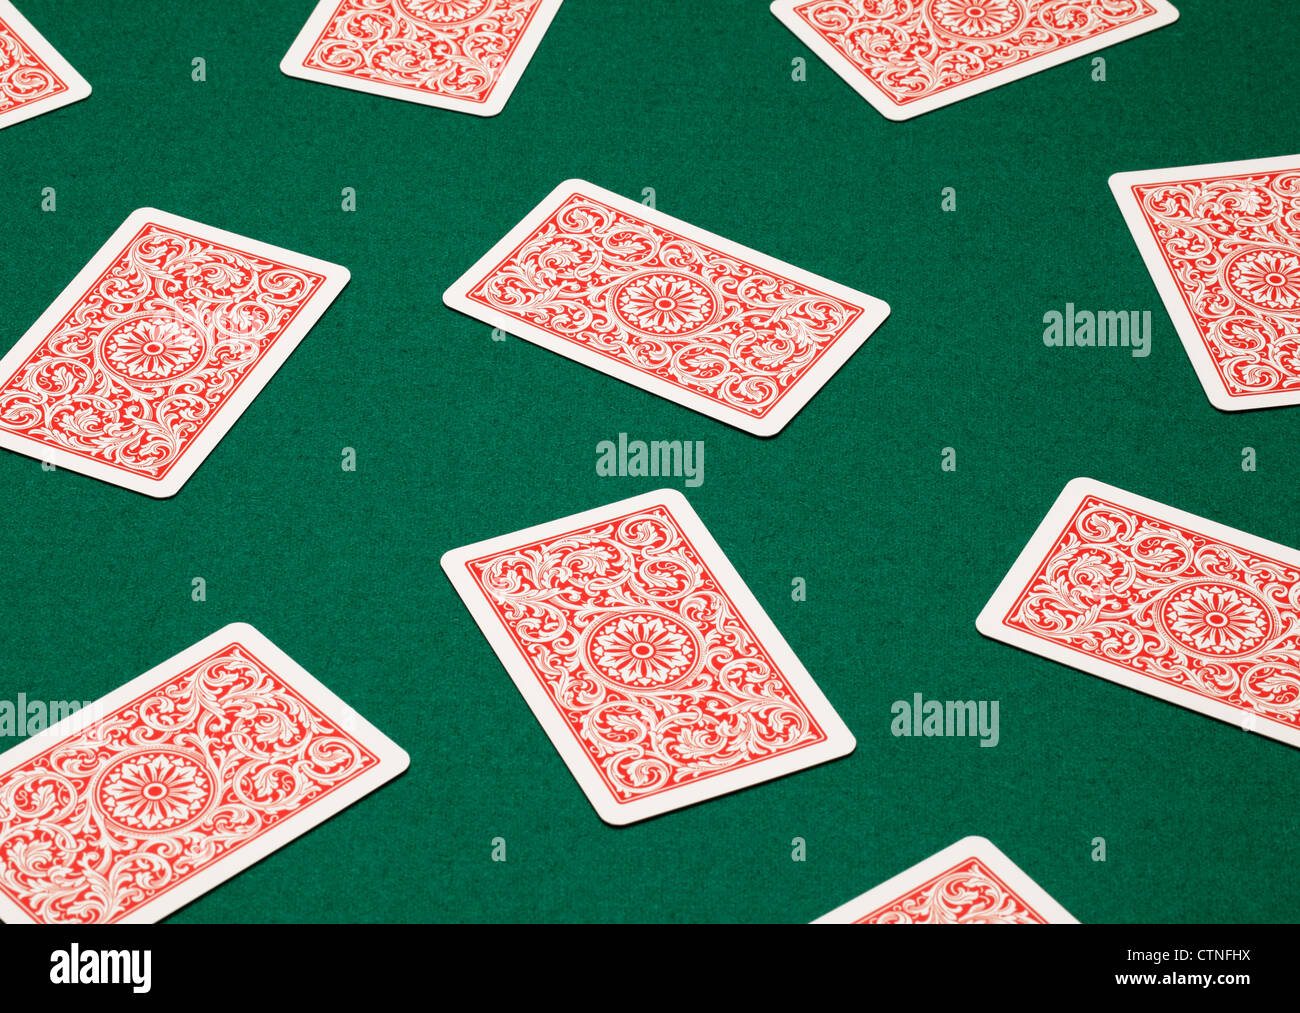 Random playing cards on a green table. - Stock Image